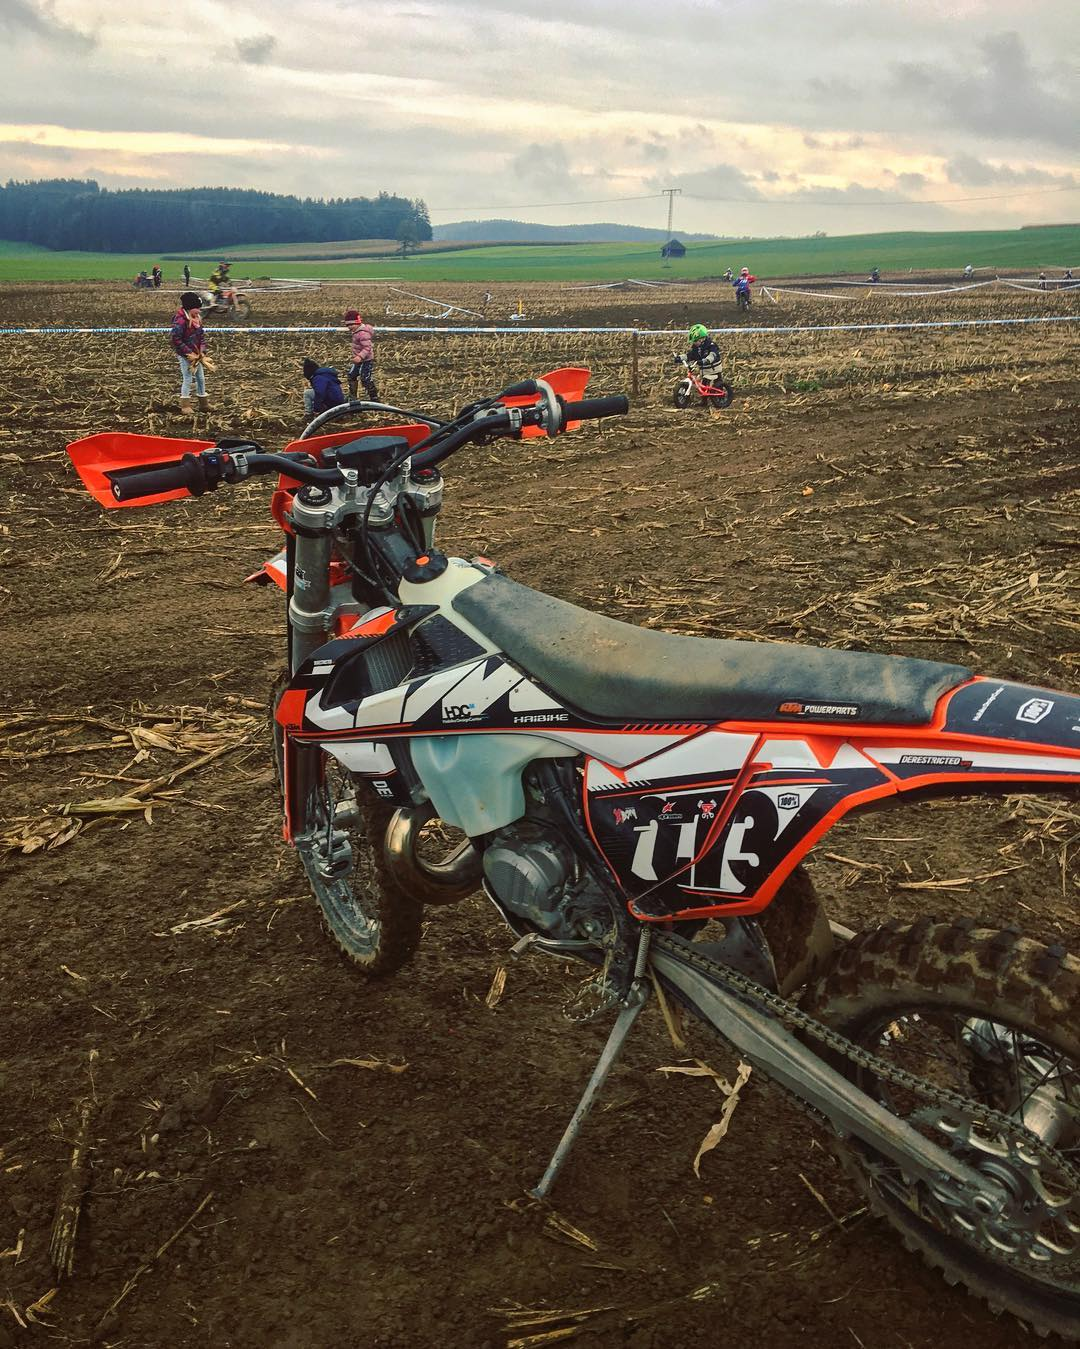 ❤️ that dirt! #ktm #300exc #enduro #moto #ktmexc #ride100percent